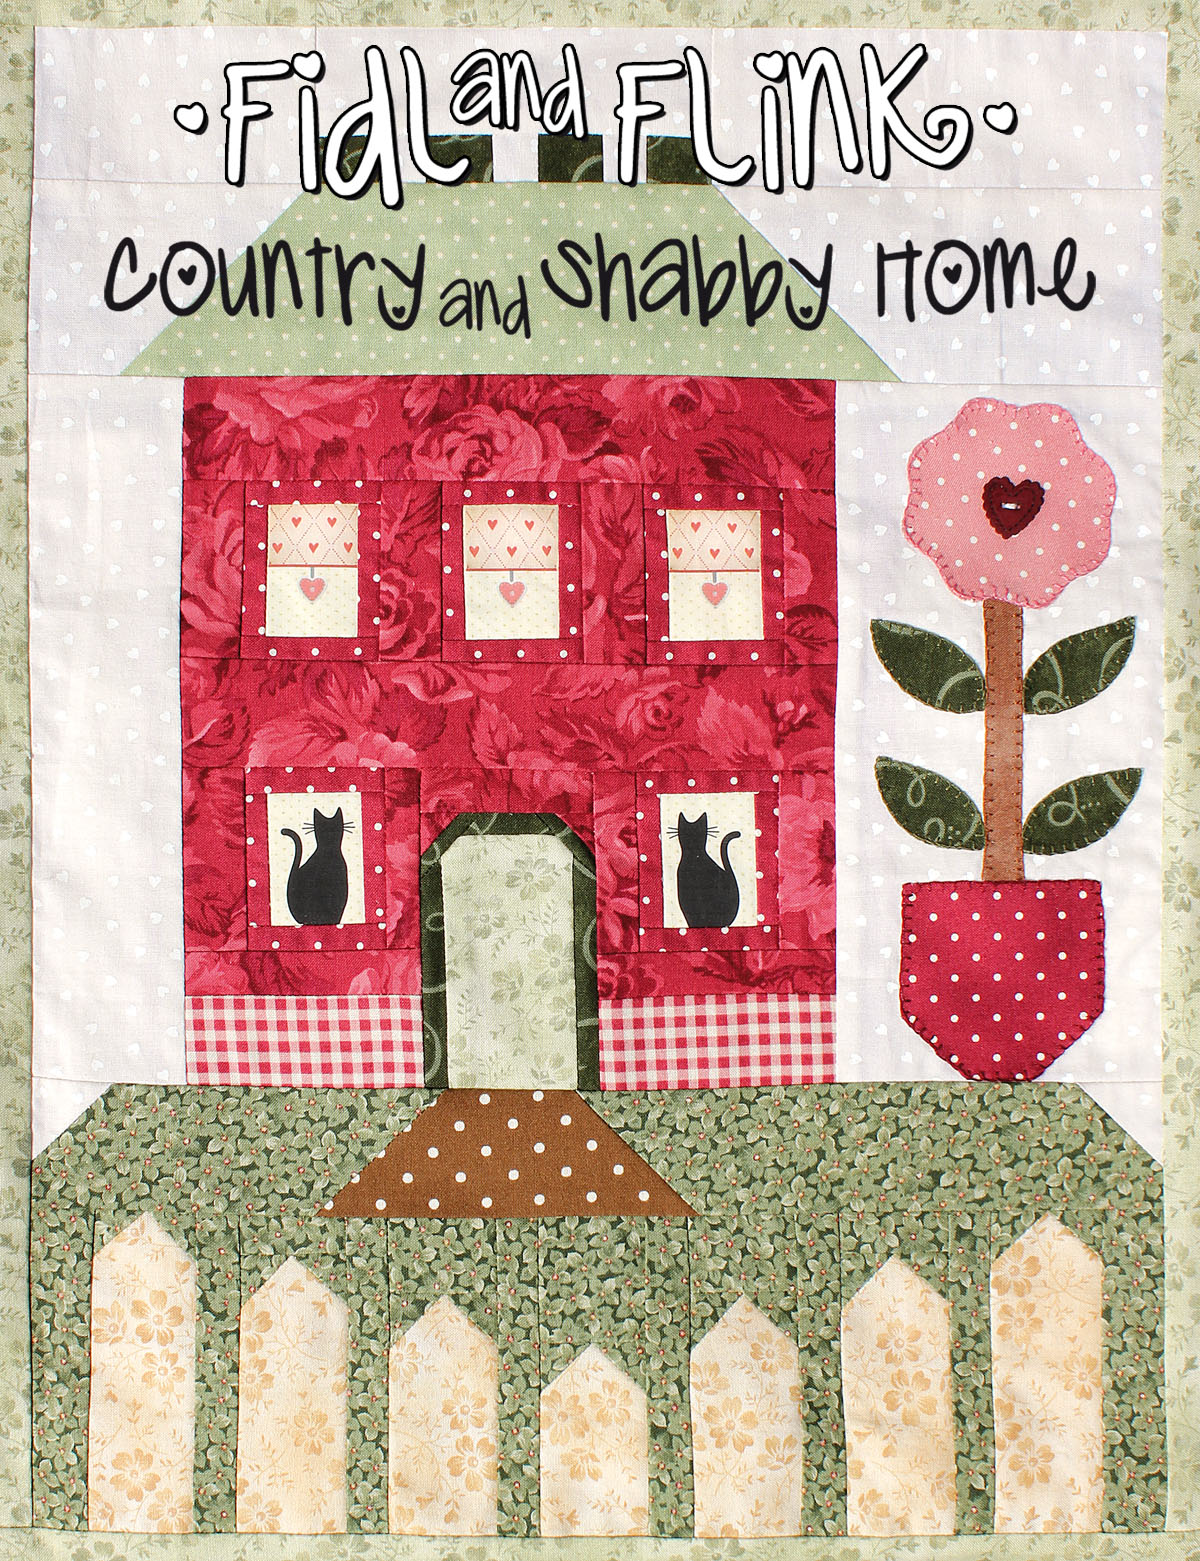 ♥Fidl and Flink♥Country and Shabby Home♥